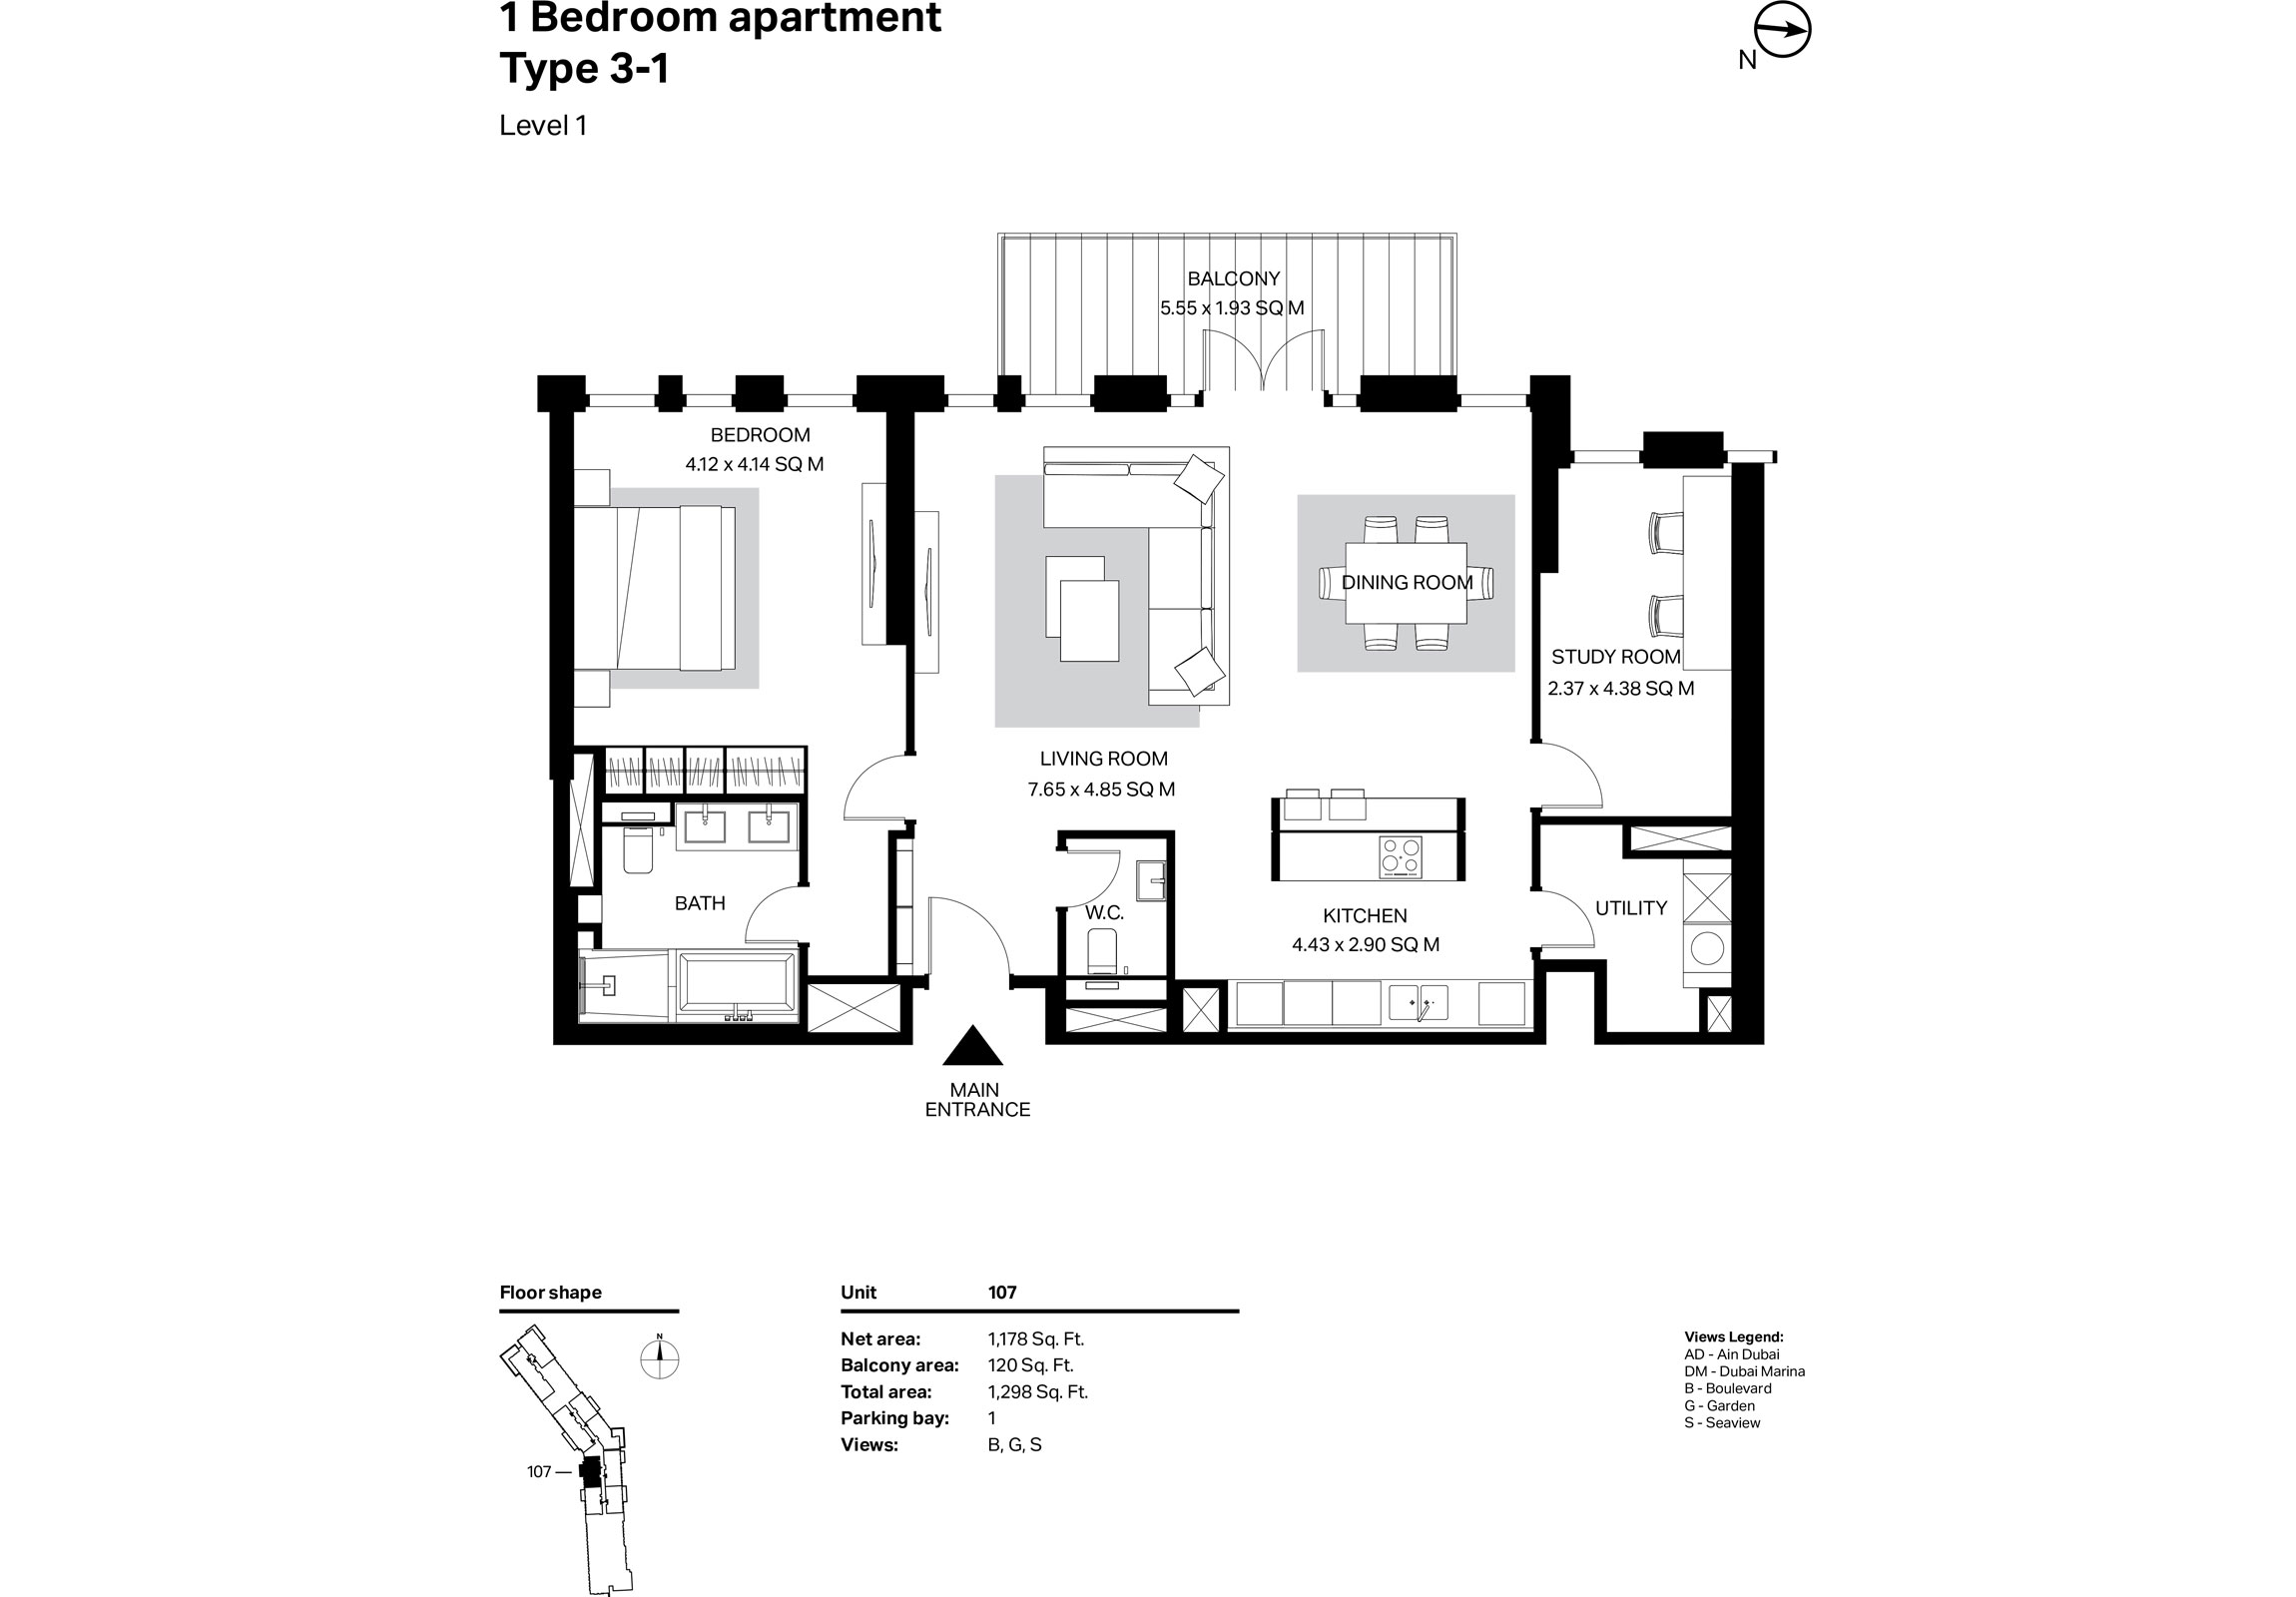 Building 2 - 1 Bedroom Type 3-1 Level 1 Size 1298    sq. ft.